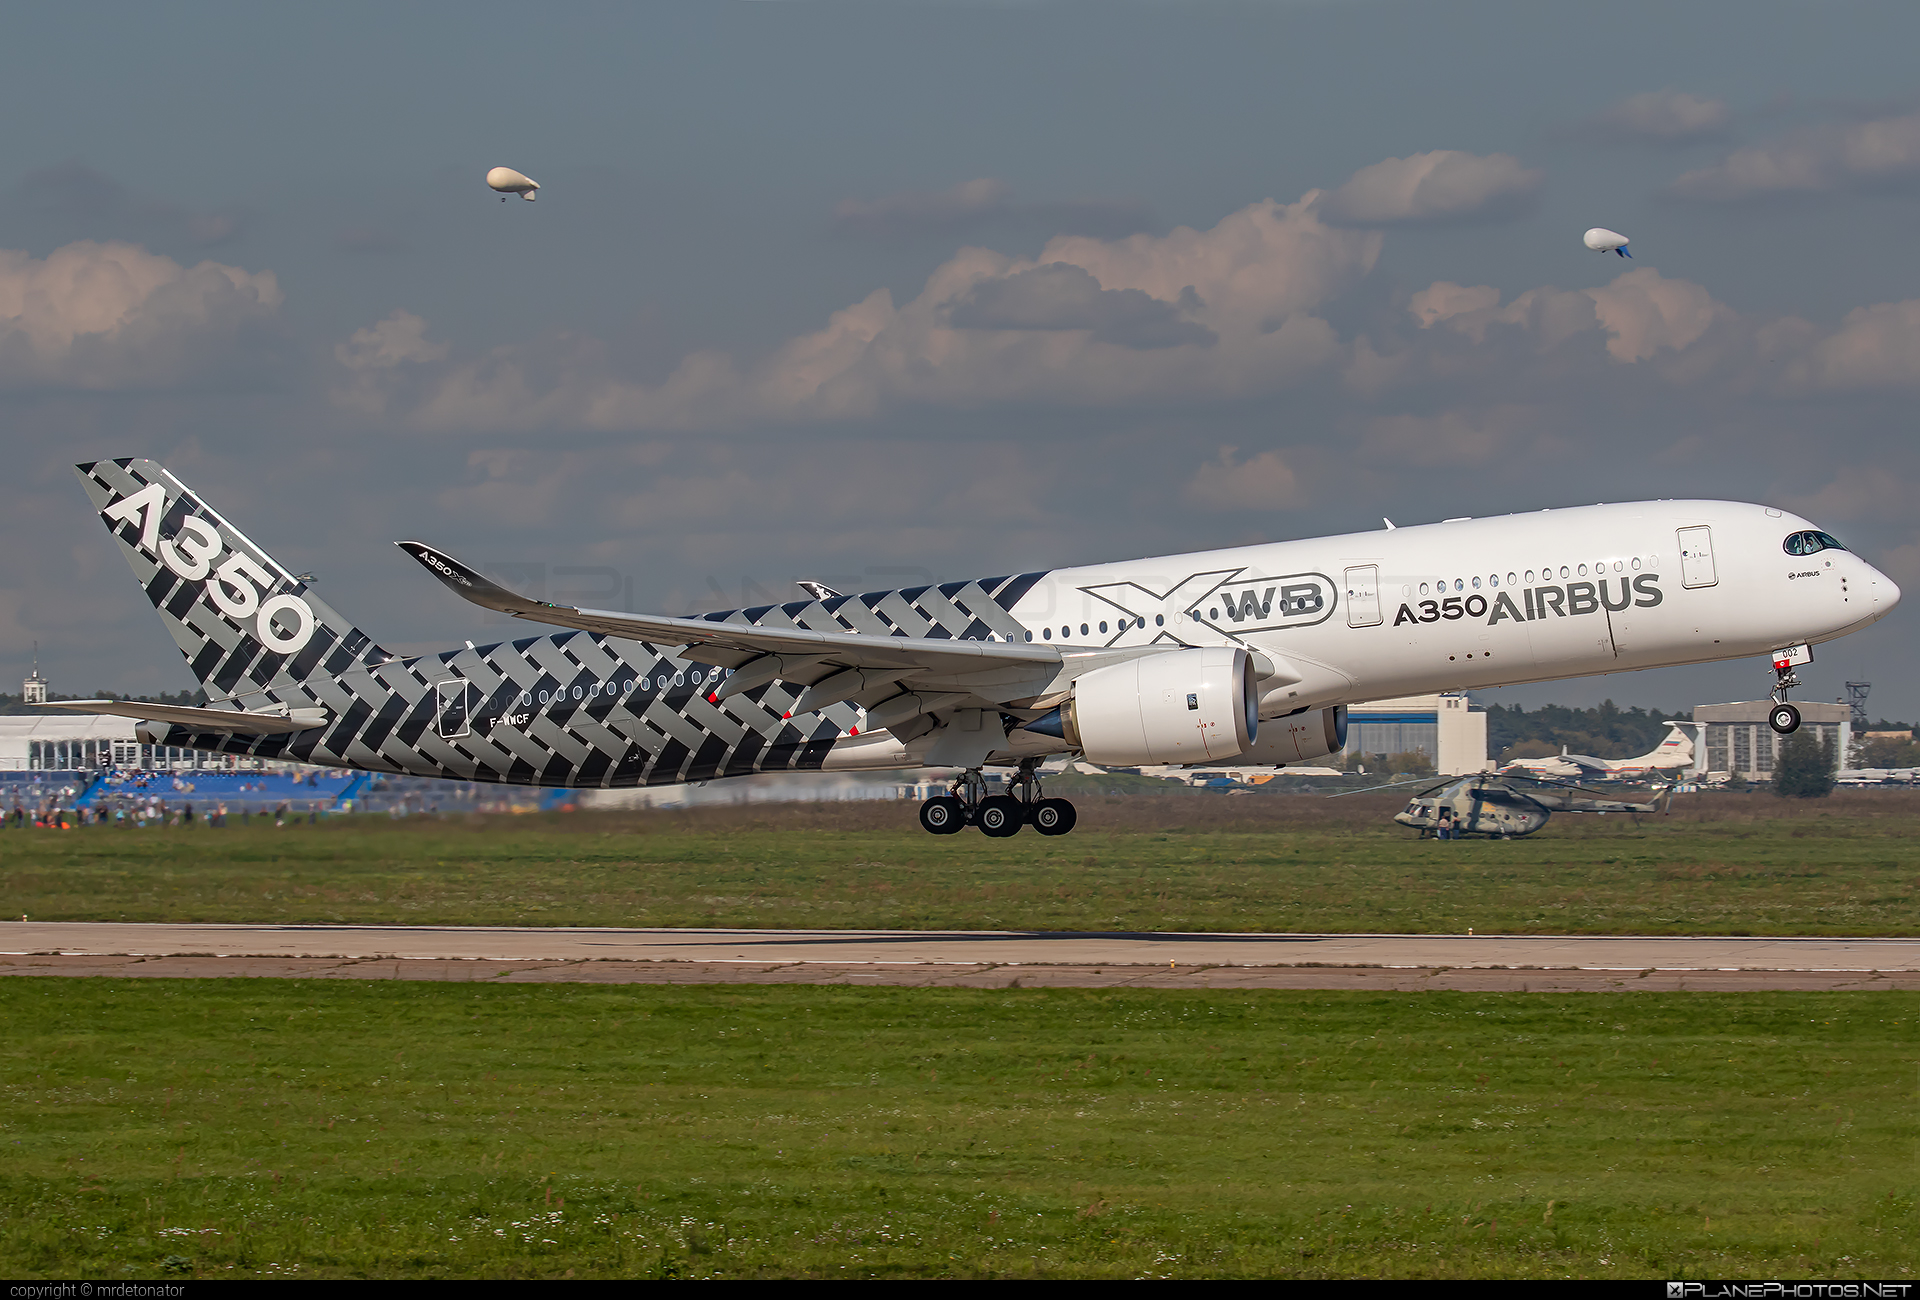 Airbus A350-941 - F-WWCF operated by Airbus Industrie #a350 #a350family #airbus #airbus350 #maks2019 #xwb